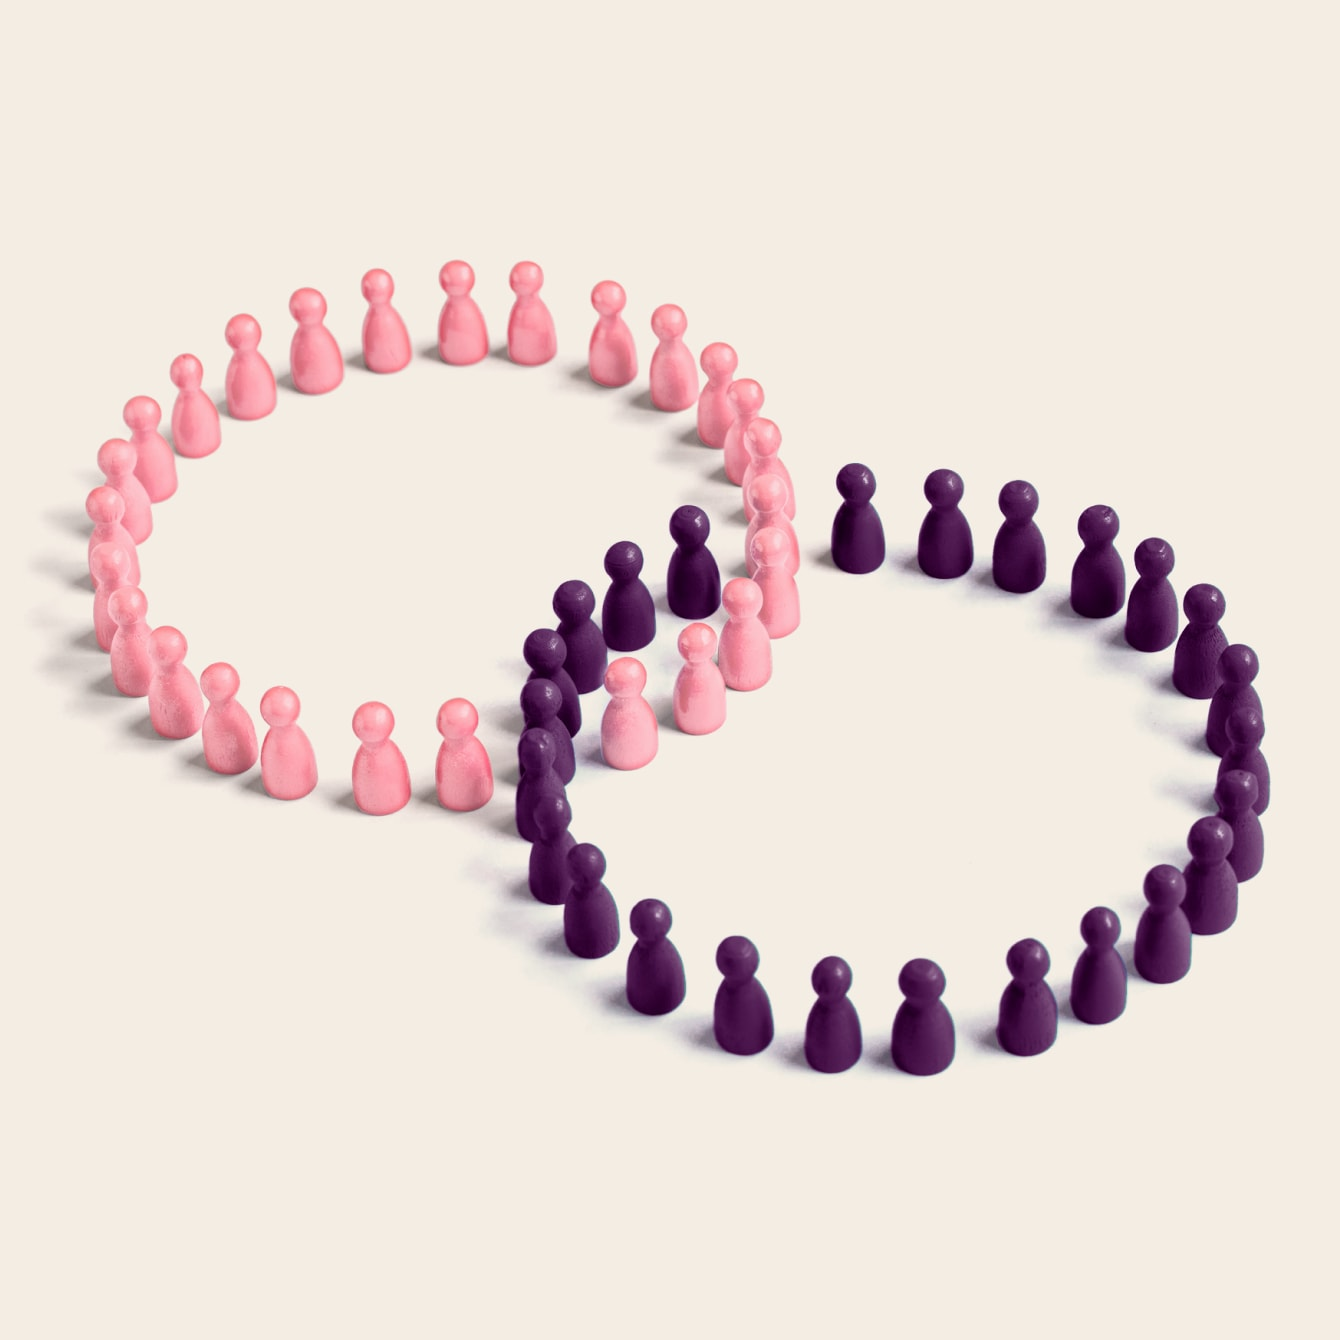 Two conjoined circles of people figurines symbolize connection two organizations via Slack Connect